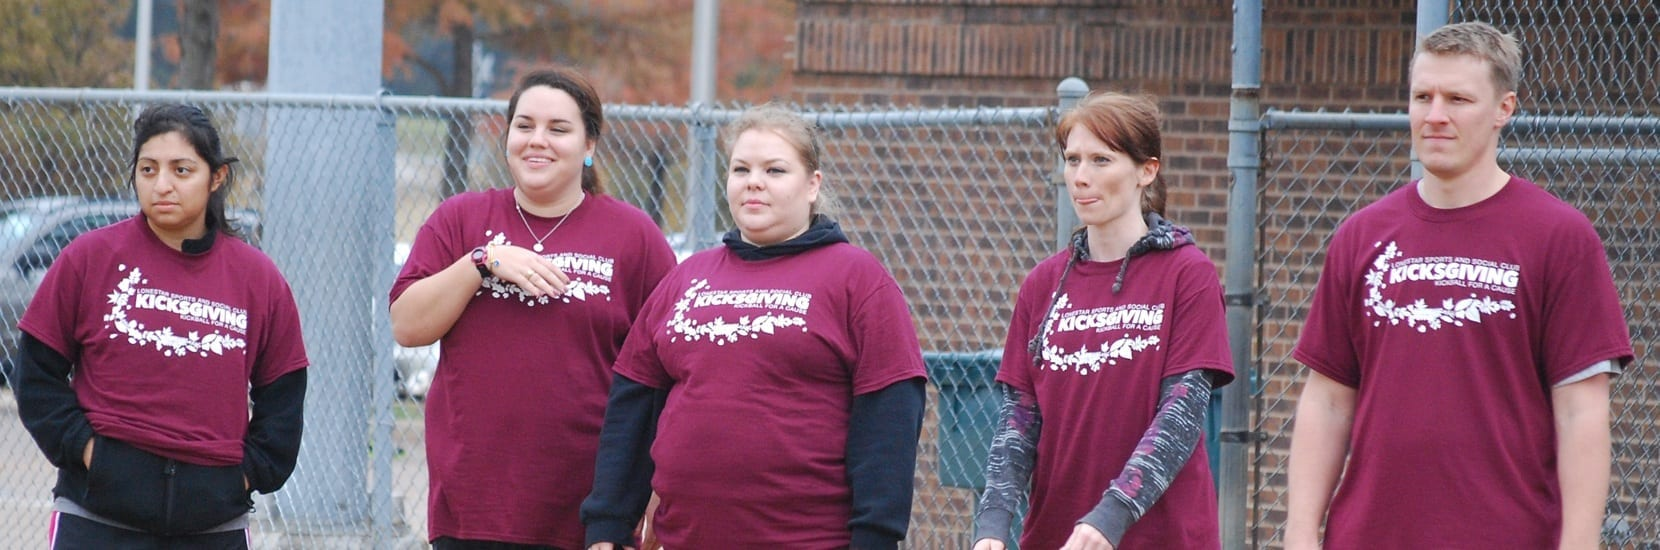 adult kickball tournaments